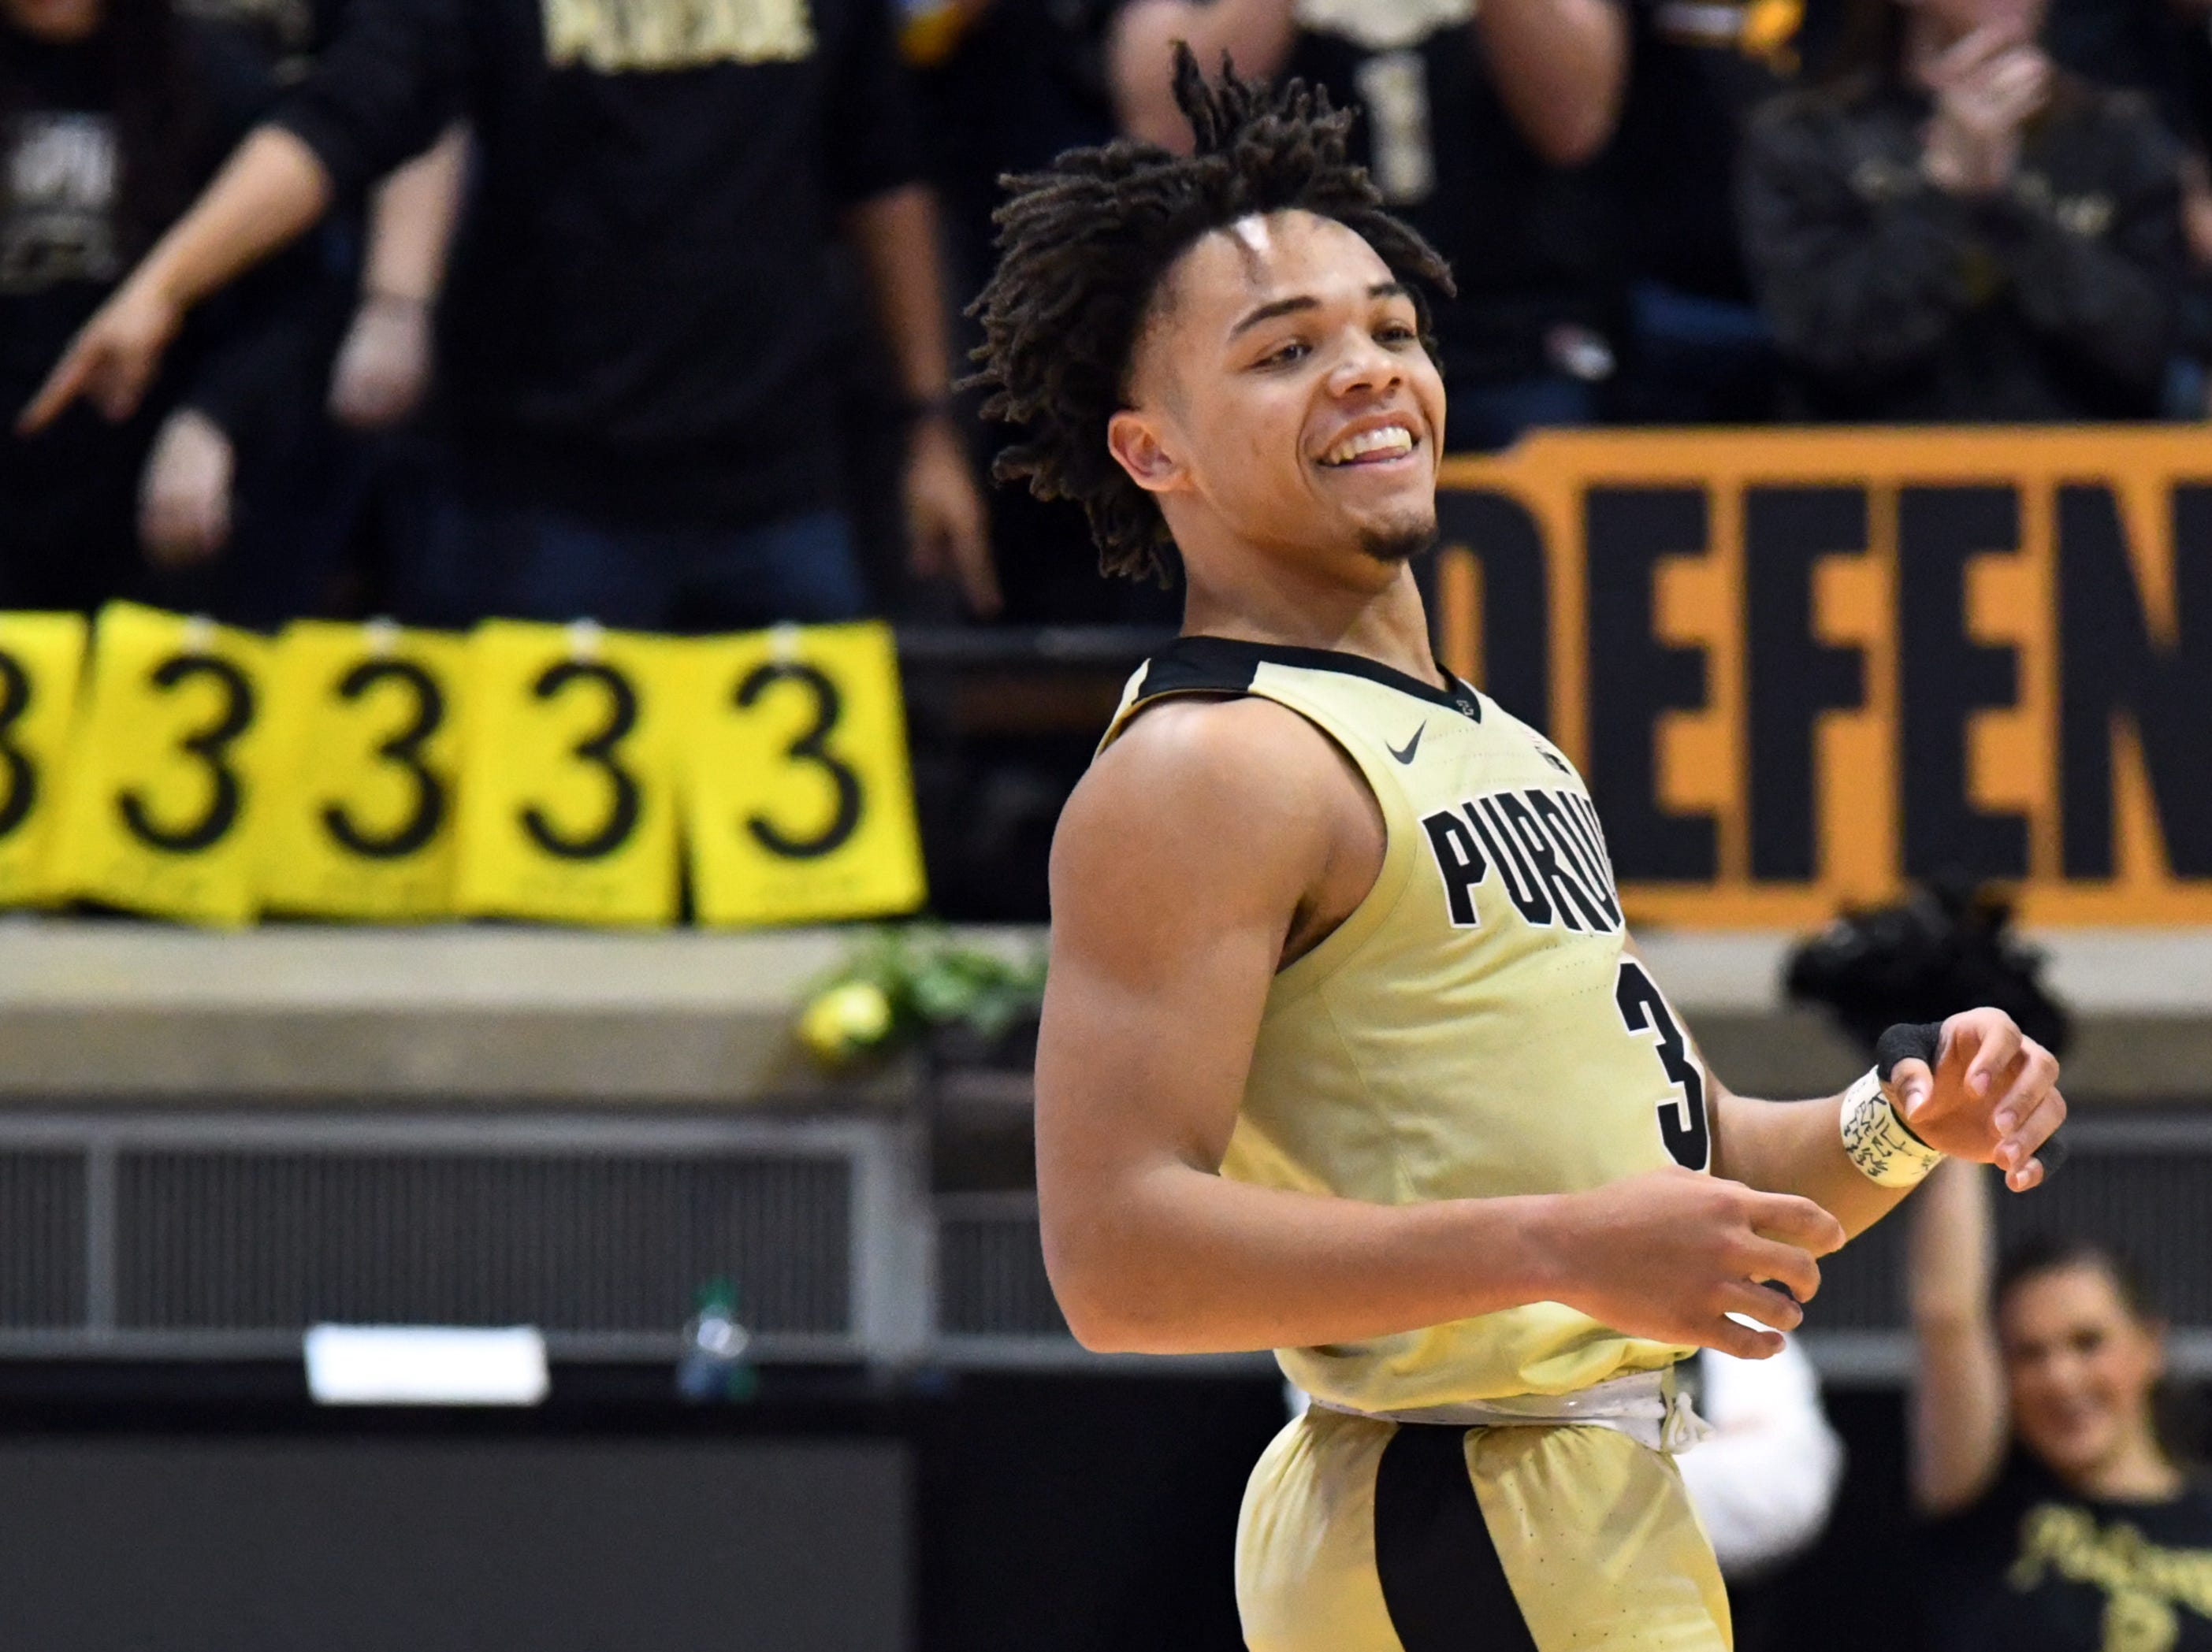 Action from Purdue's win against Iowa in West Lafayette on Thursday January 3, 2019. Purdue defeated the Hawkeyes 86-70. Carsen Edwards